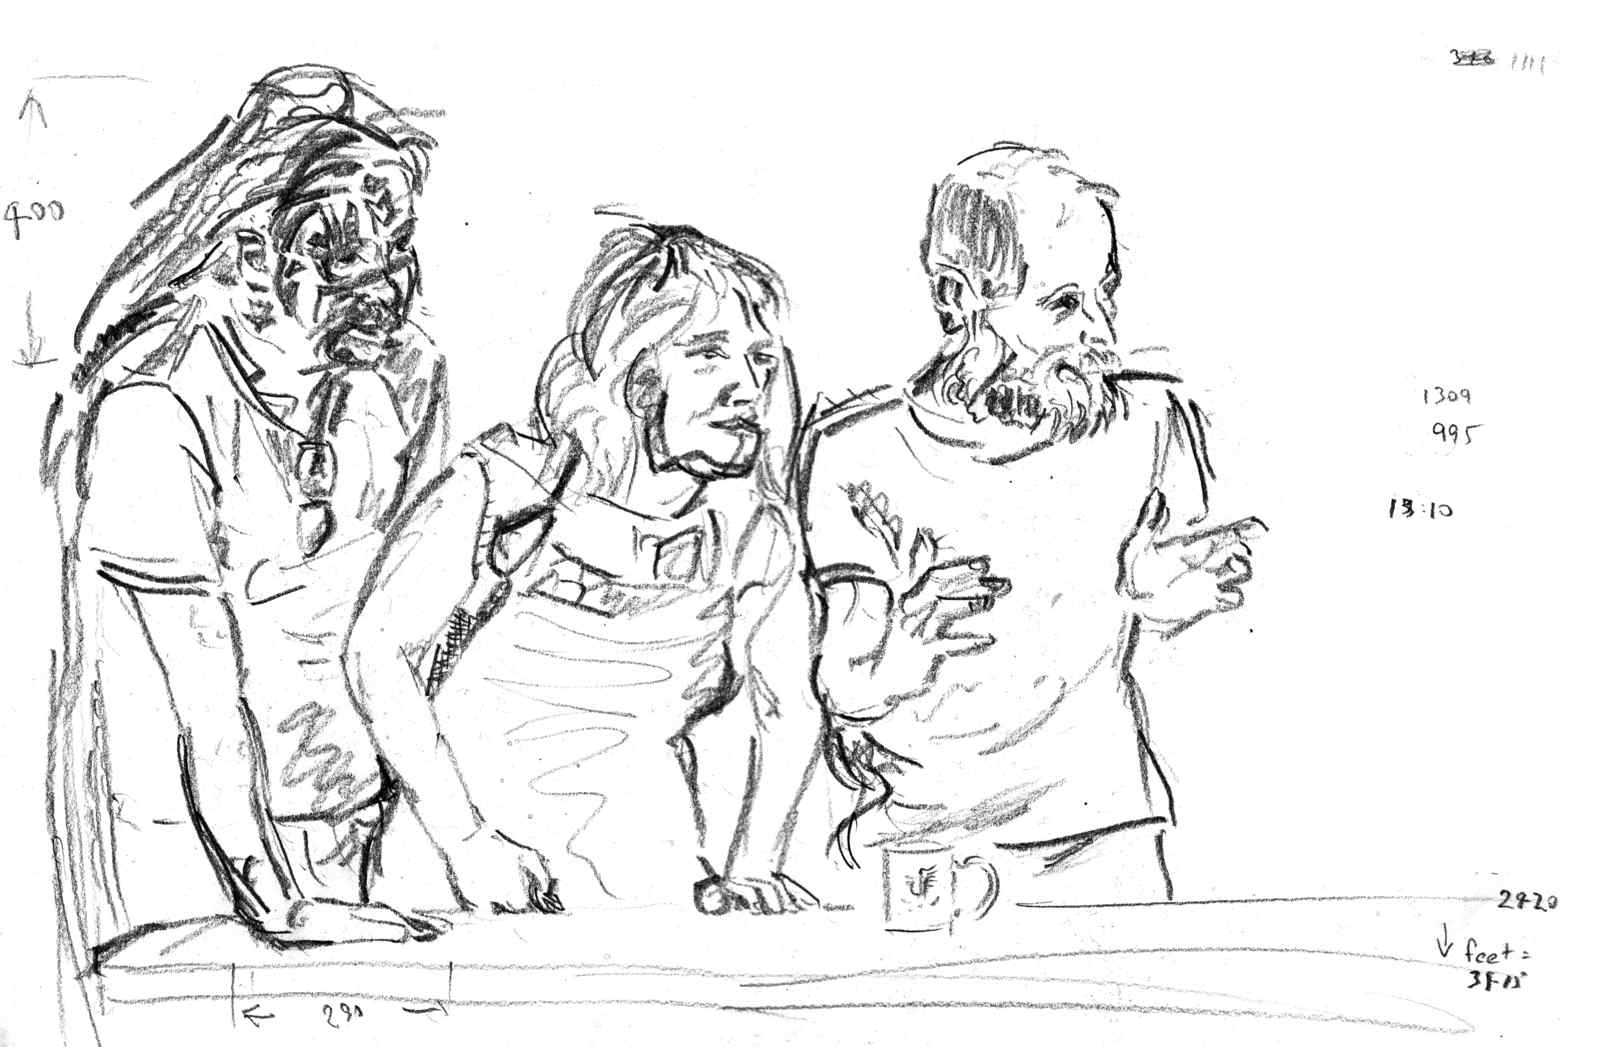 Last Supper at the Newtown Mission: some apostle sketches